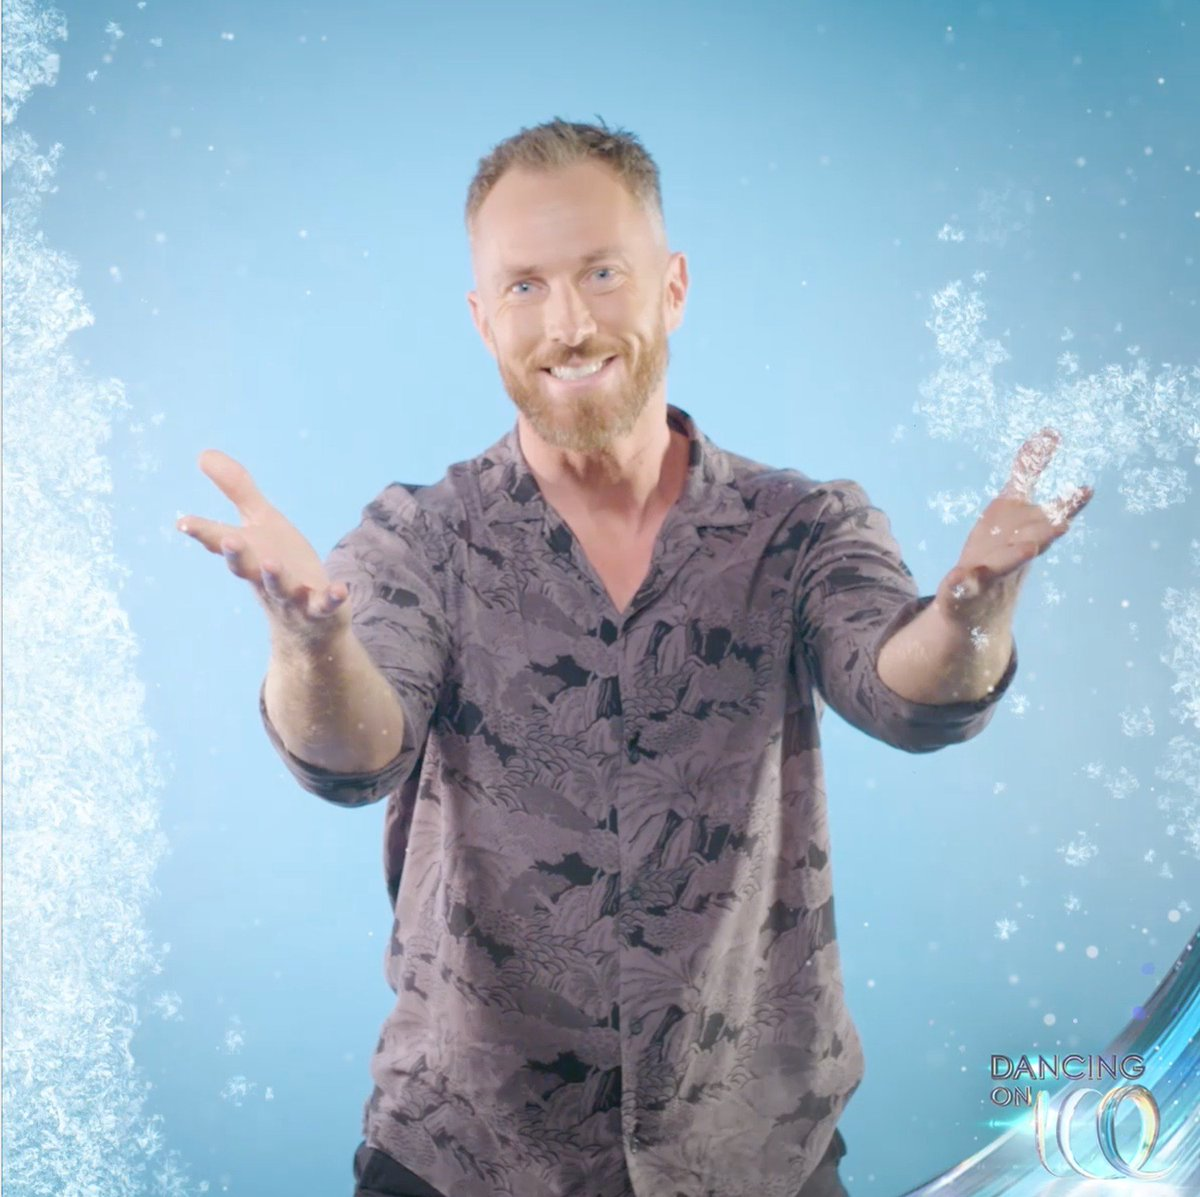 dancing on ice james jordan.jpg